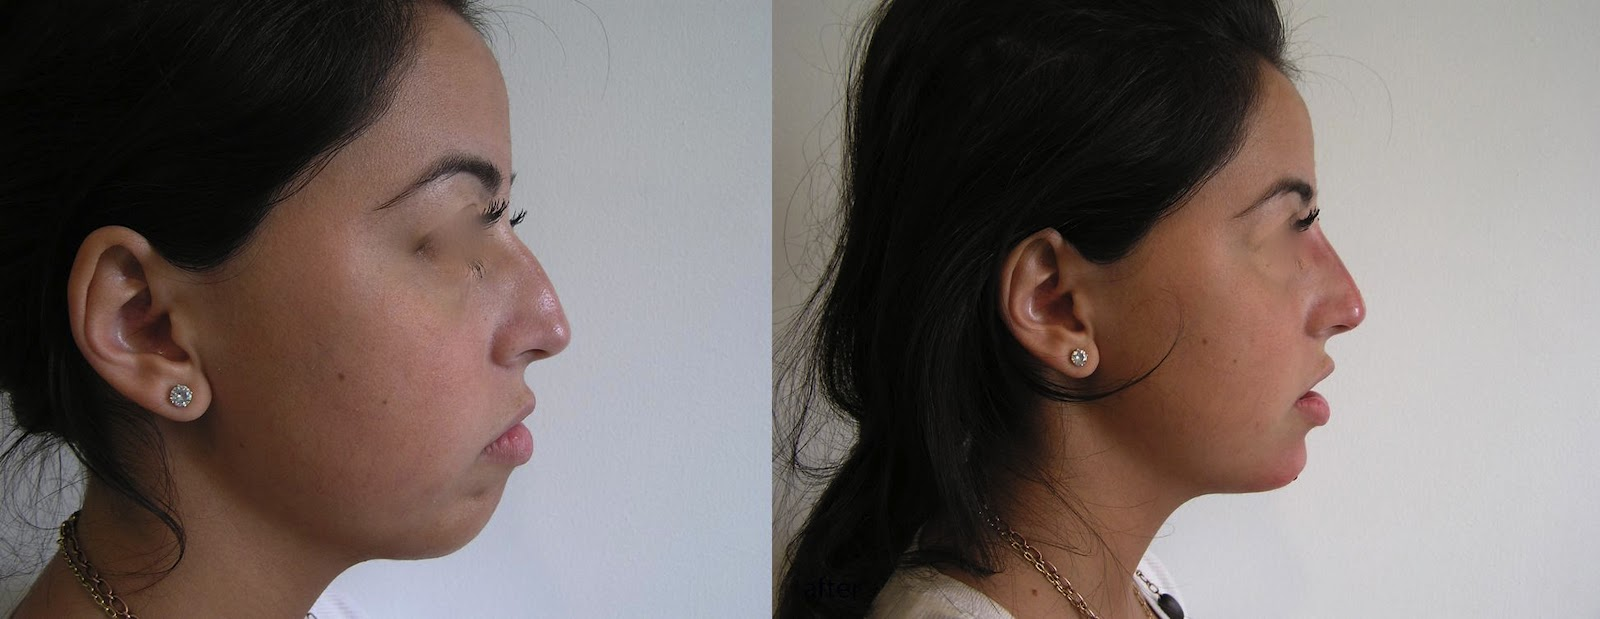 non surgical chin augmentation reviews